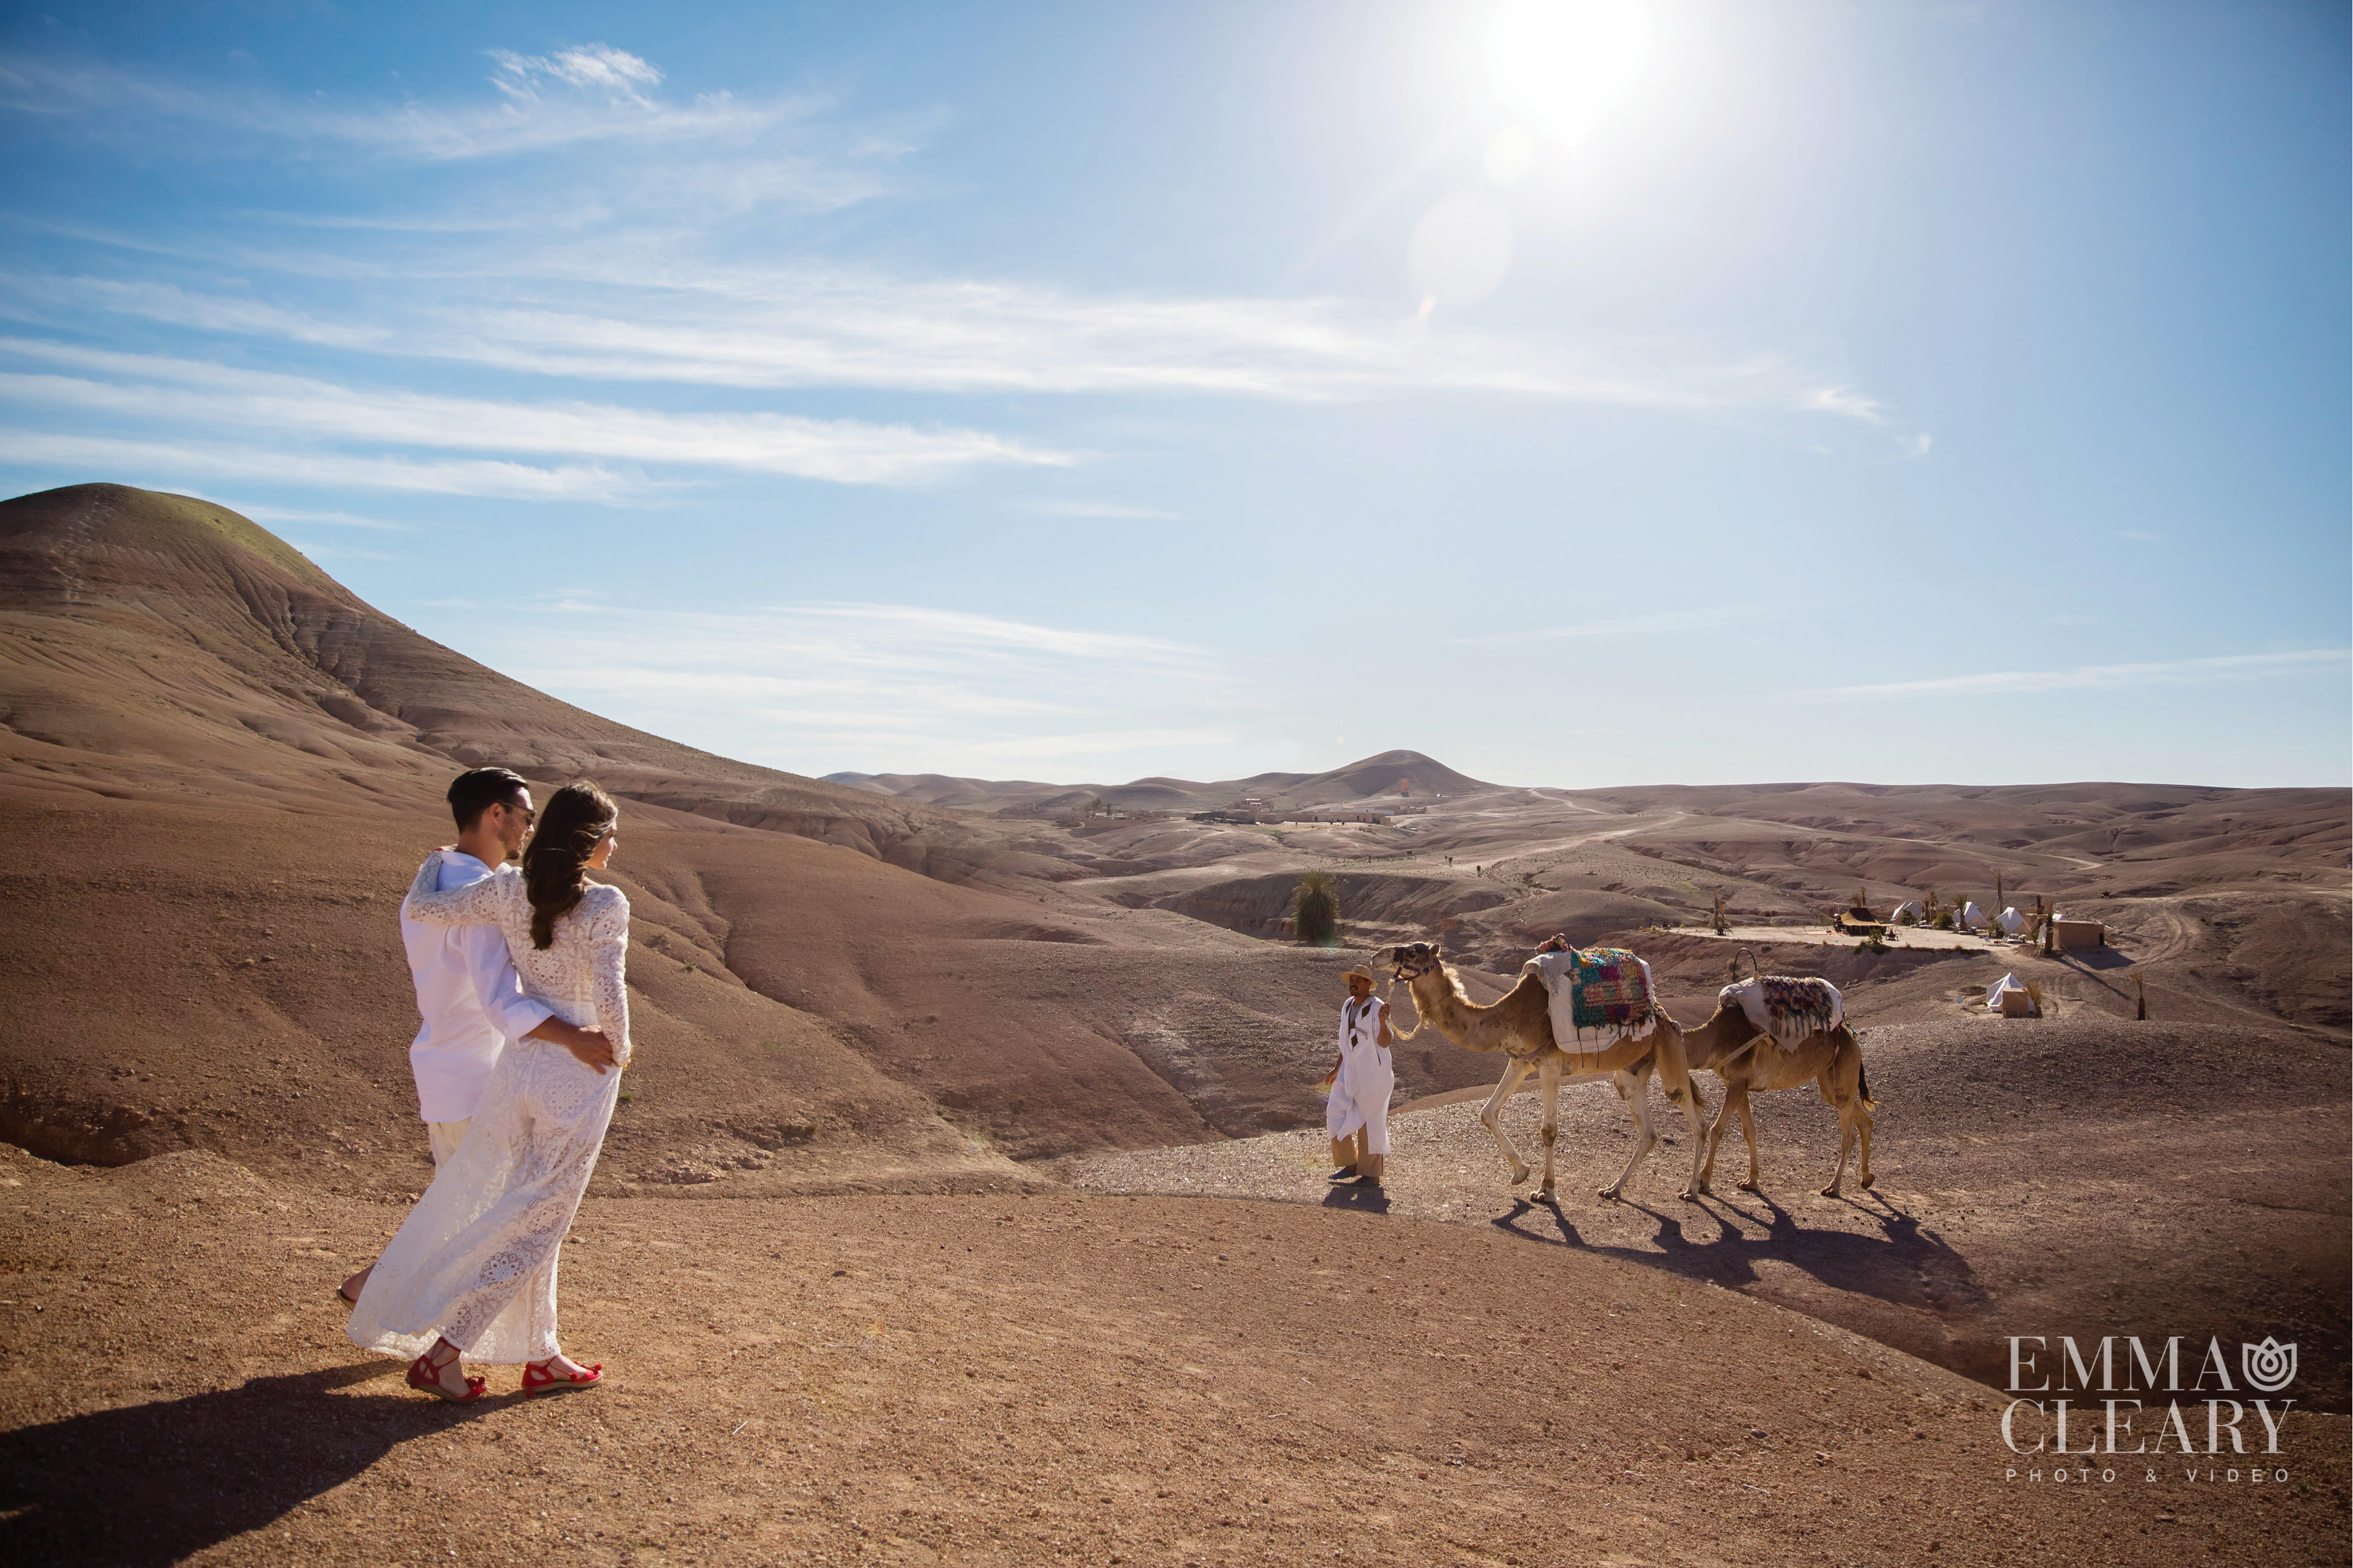 Emma_cleary_photography Destination Wedding Morrocco06